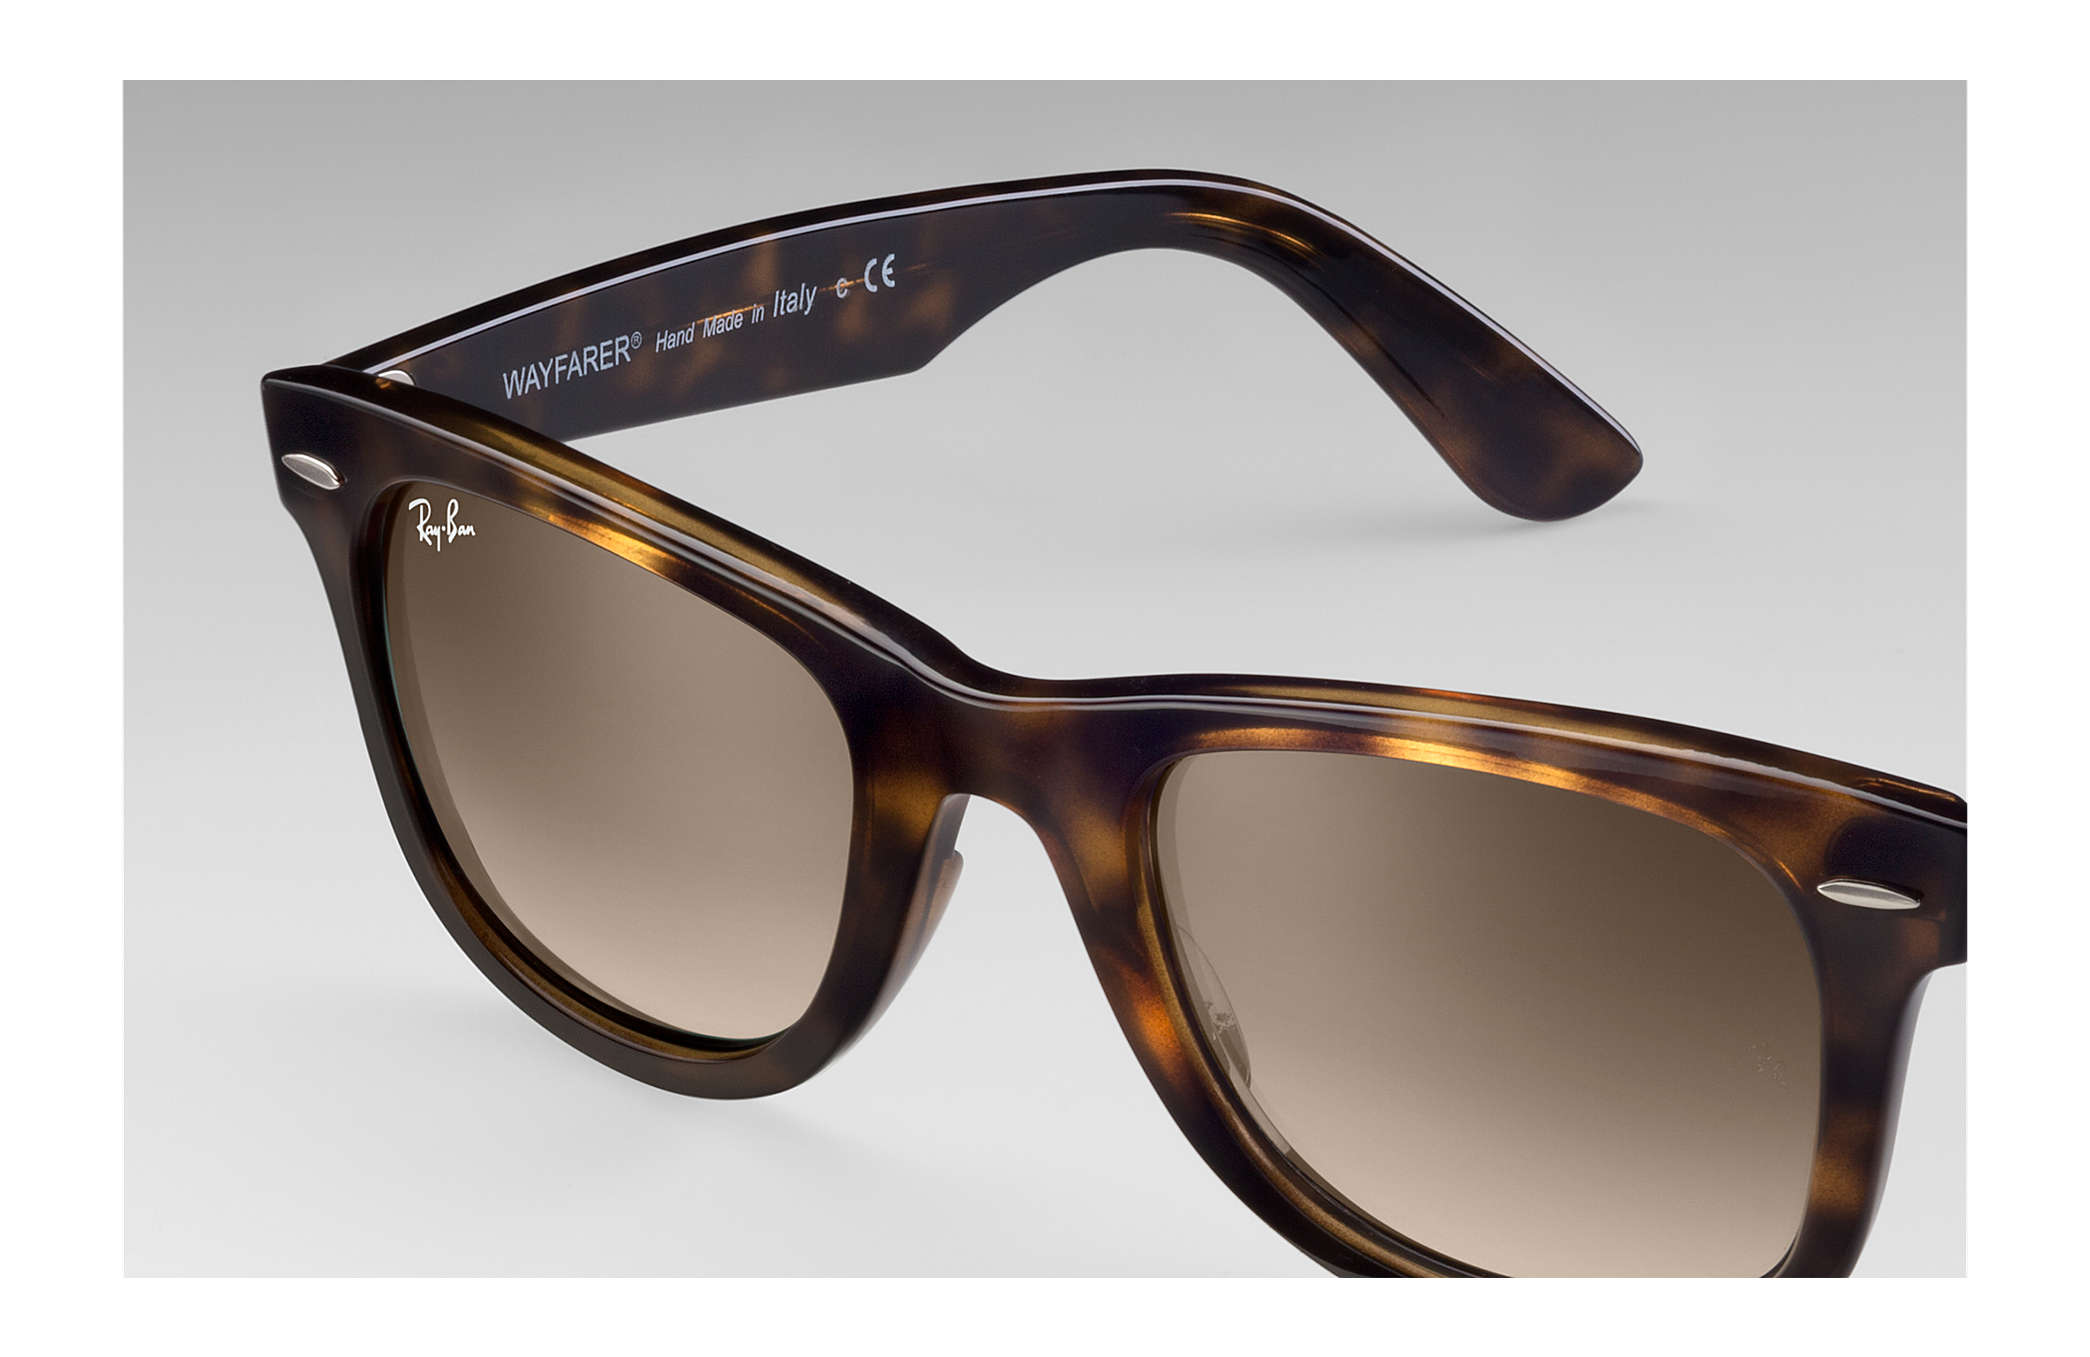 731ee93102 Ray-Ban Wayfarer Ease RB4340 Tortoise - Injected - Light Brown ...